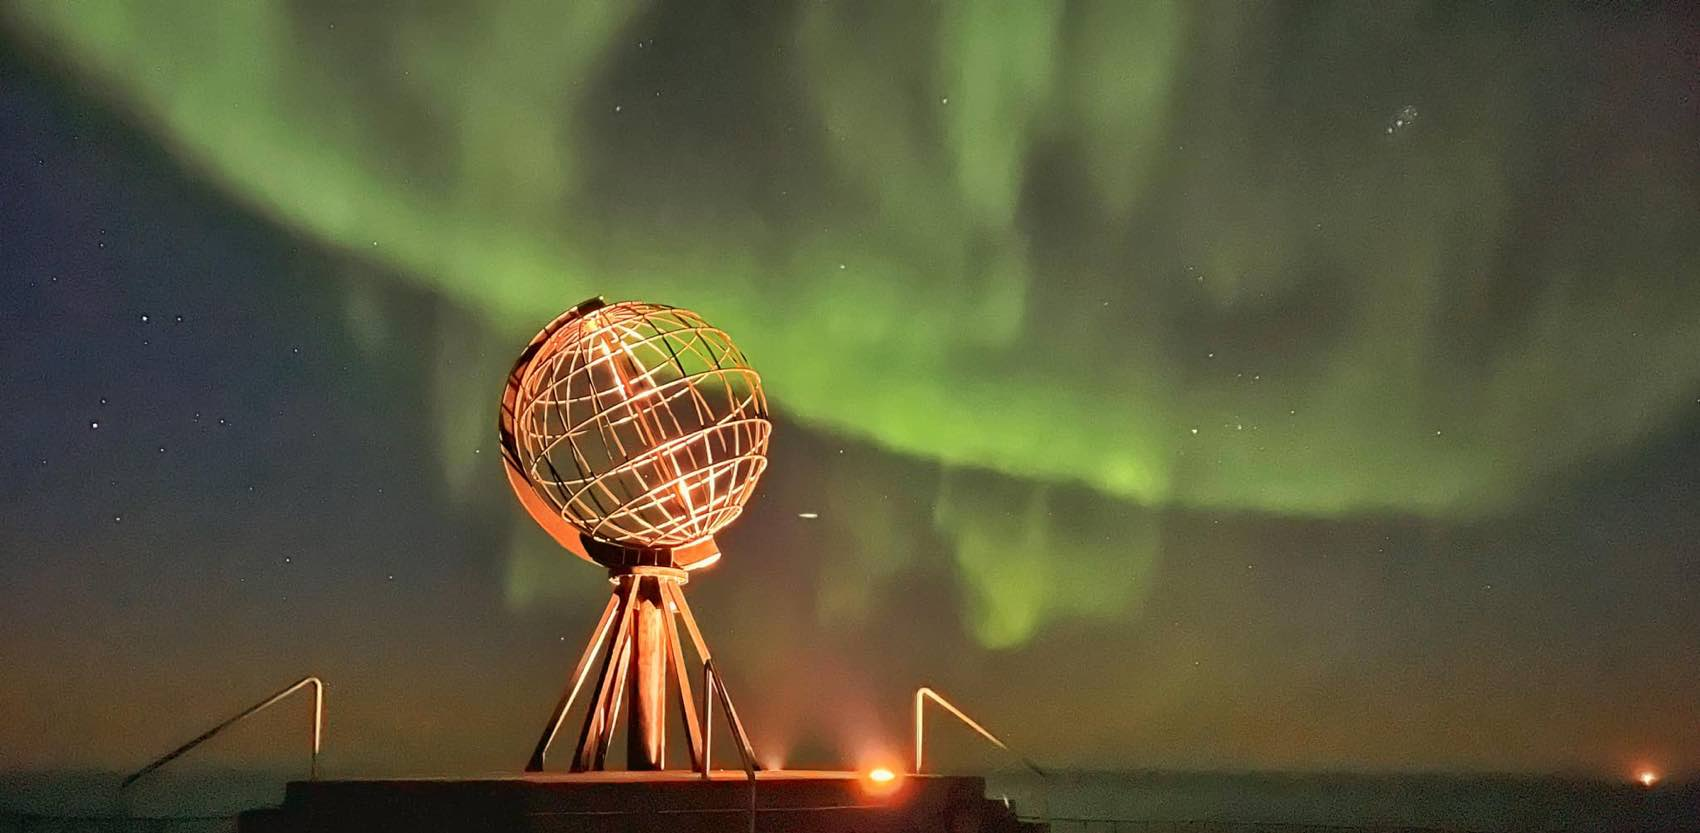 Plenty of Northern Lights over North Cape in September 2021. Picture by Hilde Fagerhaug